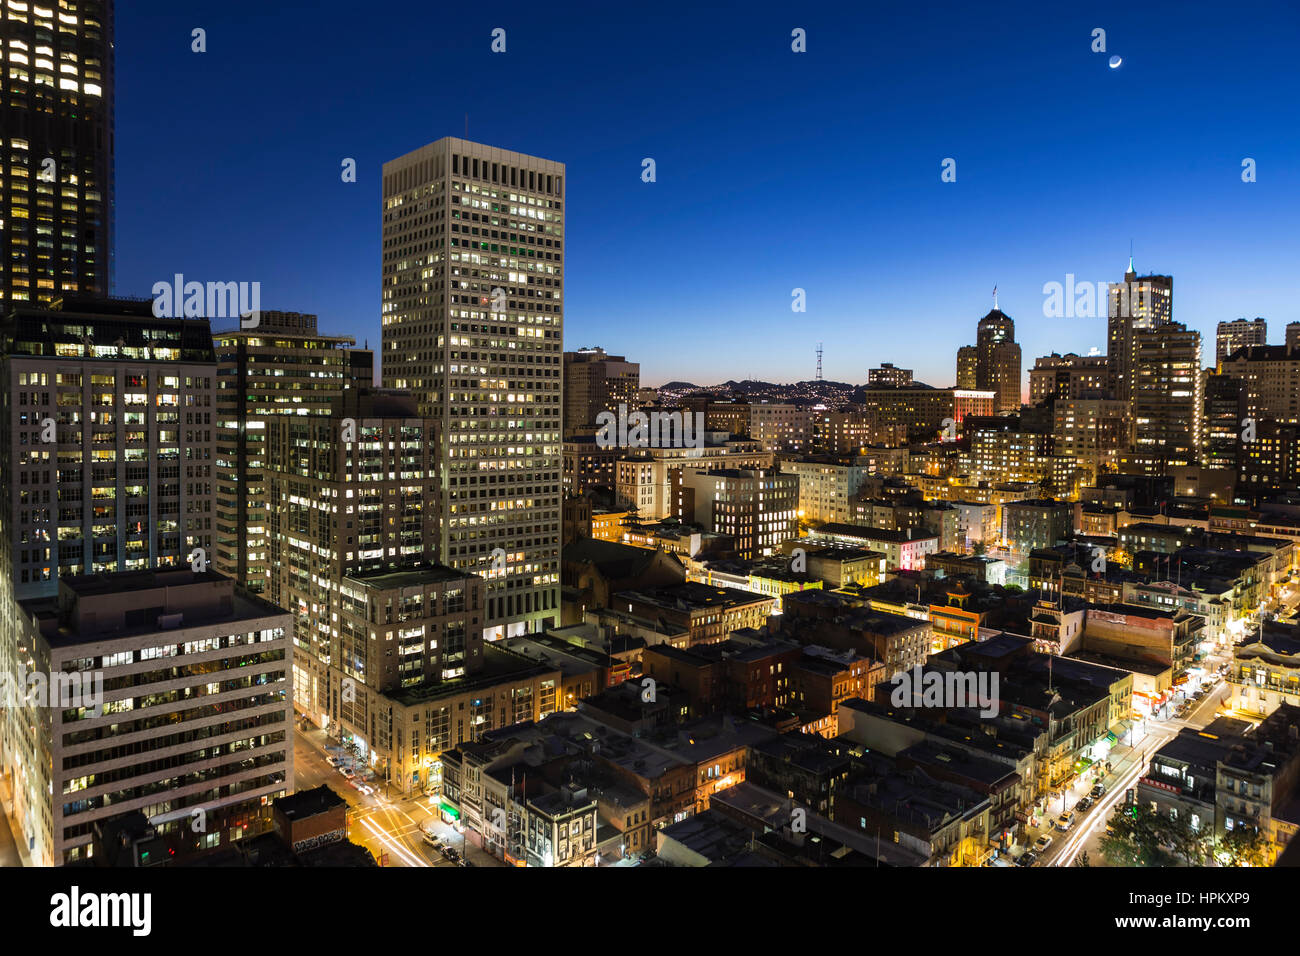 Editorial dusk view of Nob Hill and Chinatown in San Francisco, California. Stock Photo